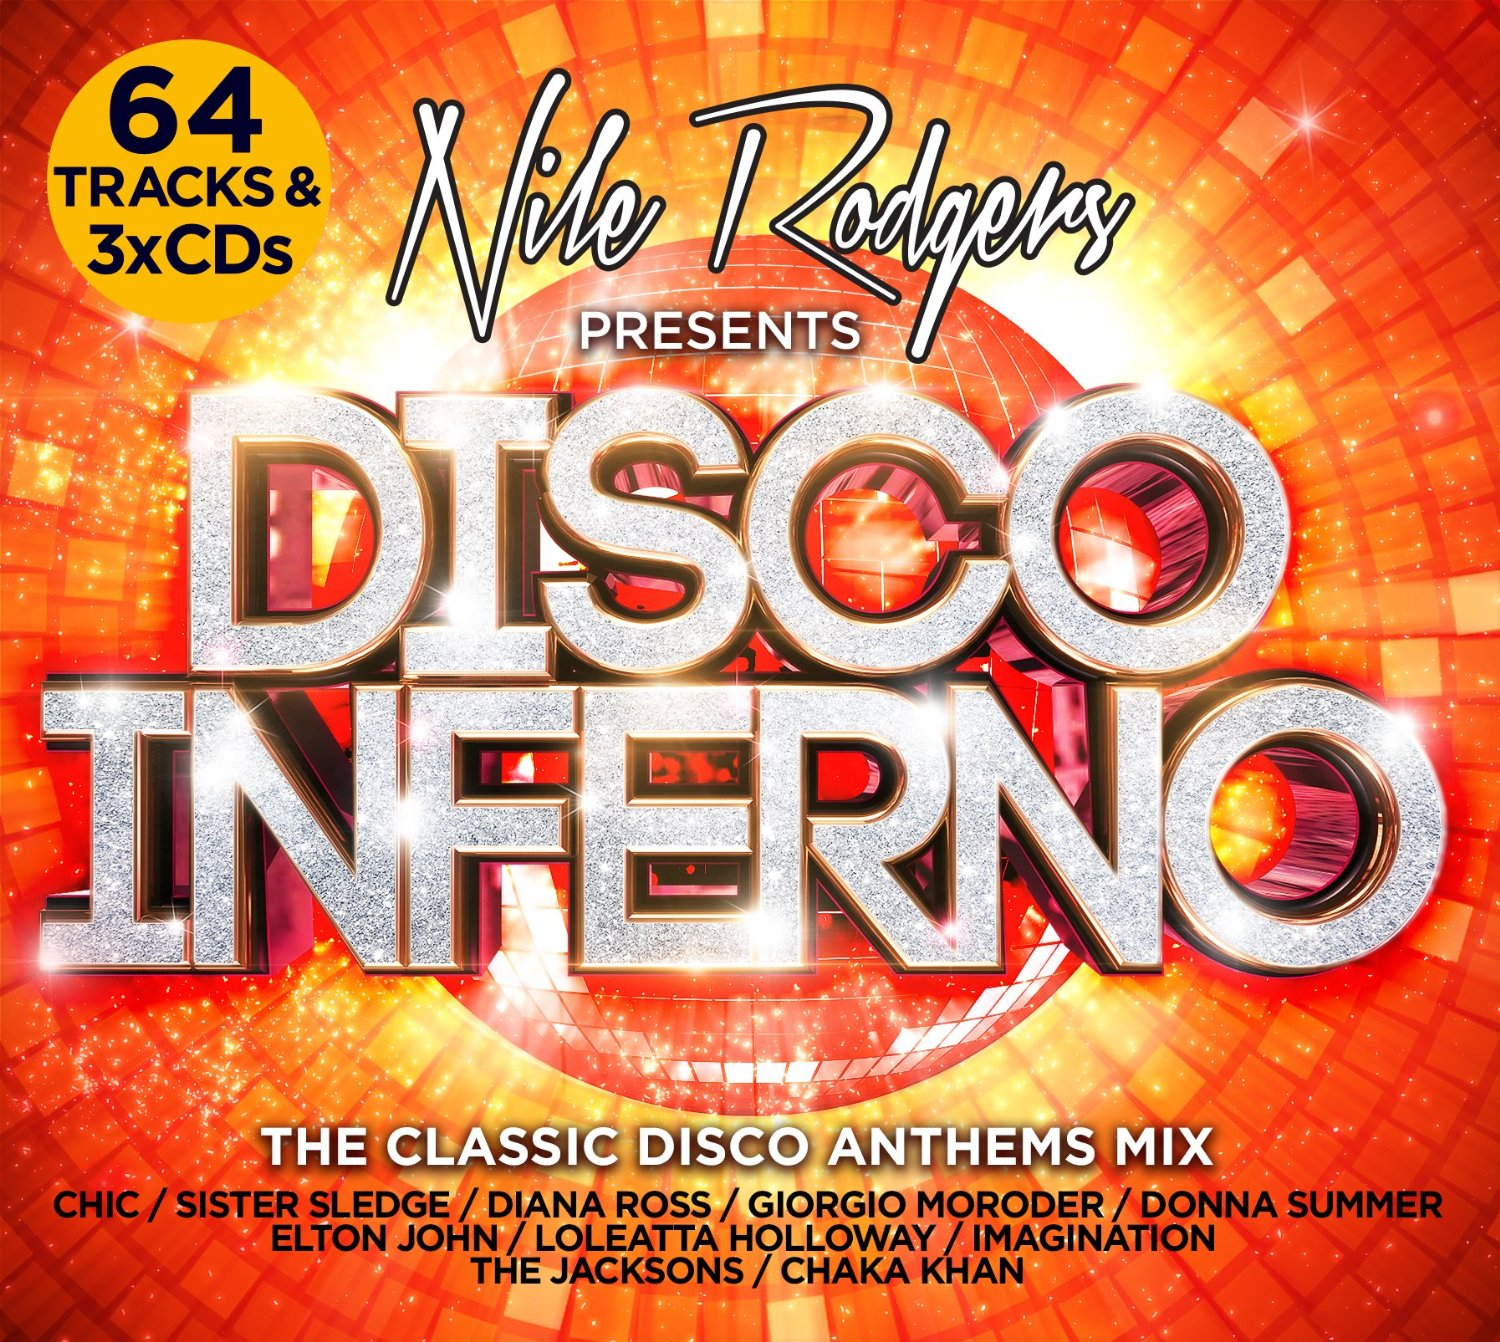 Nile rodgers presents disco inferno 3 cd dubman home for Classic house cd